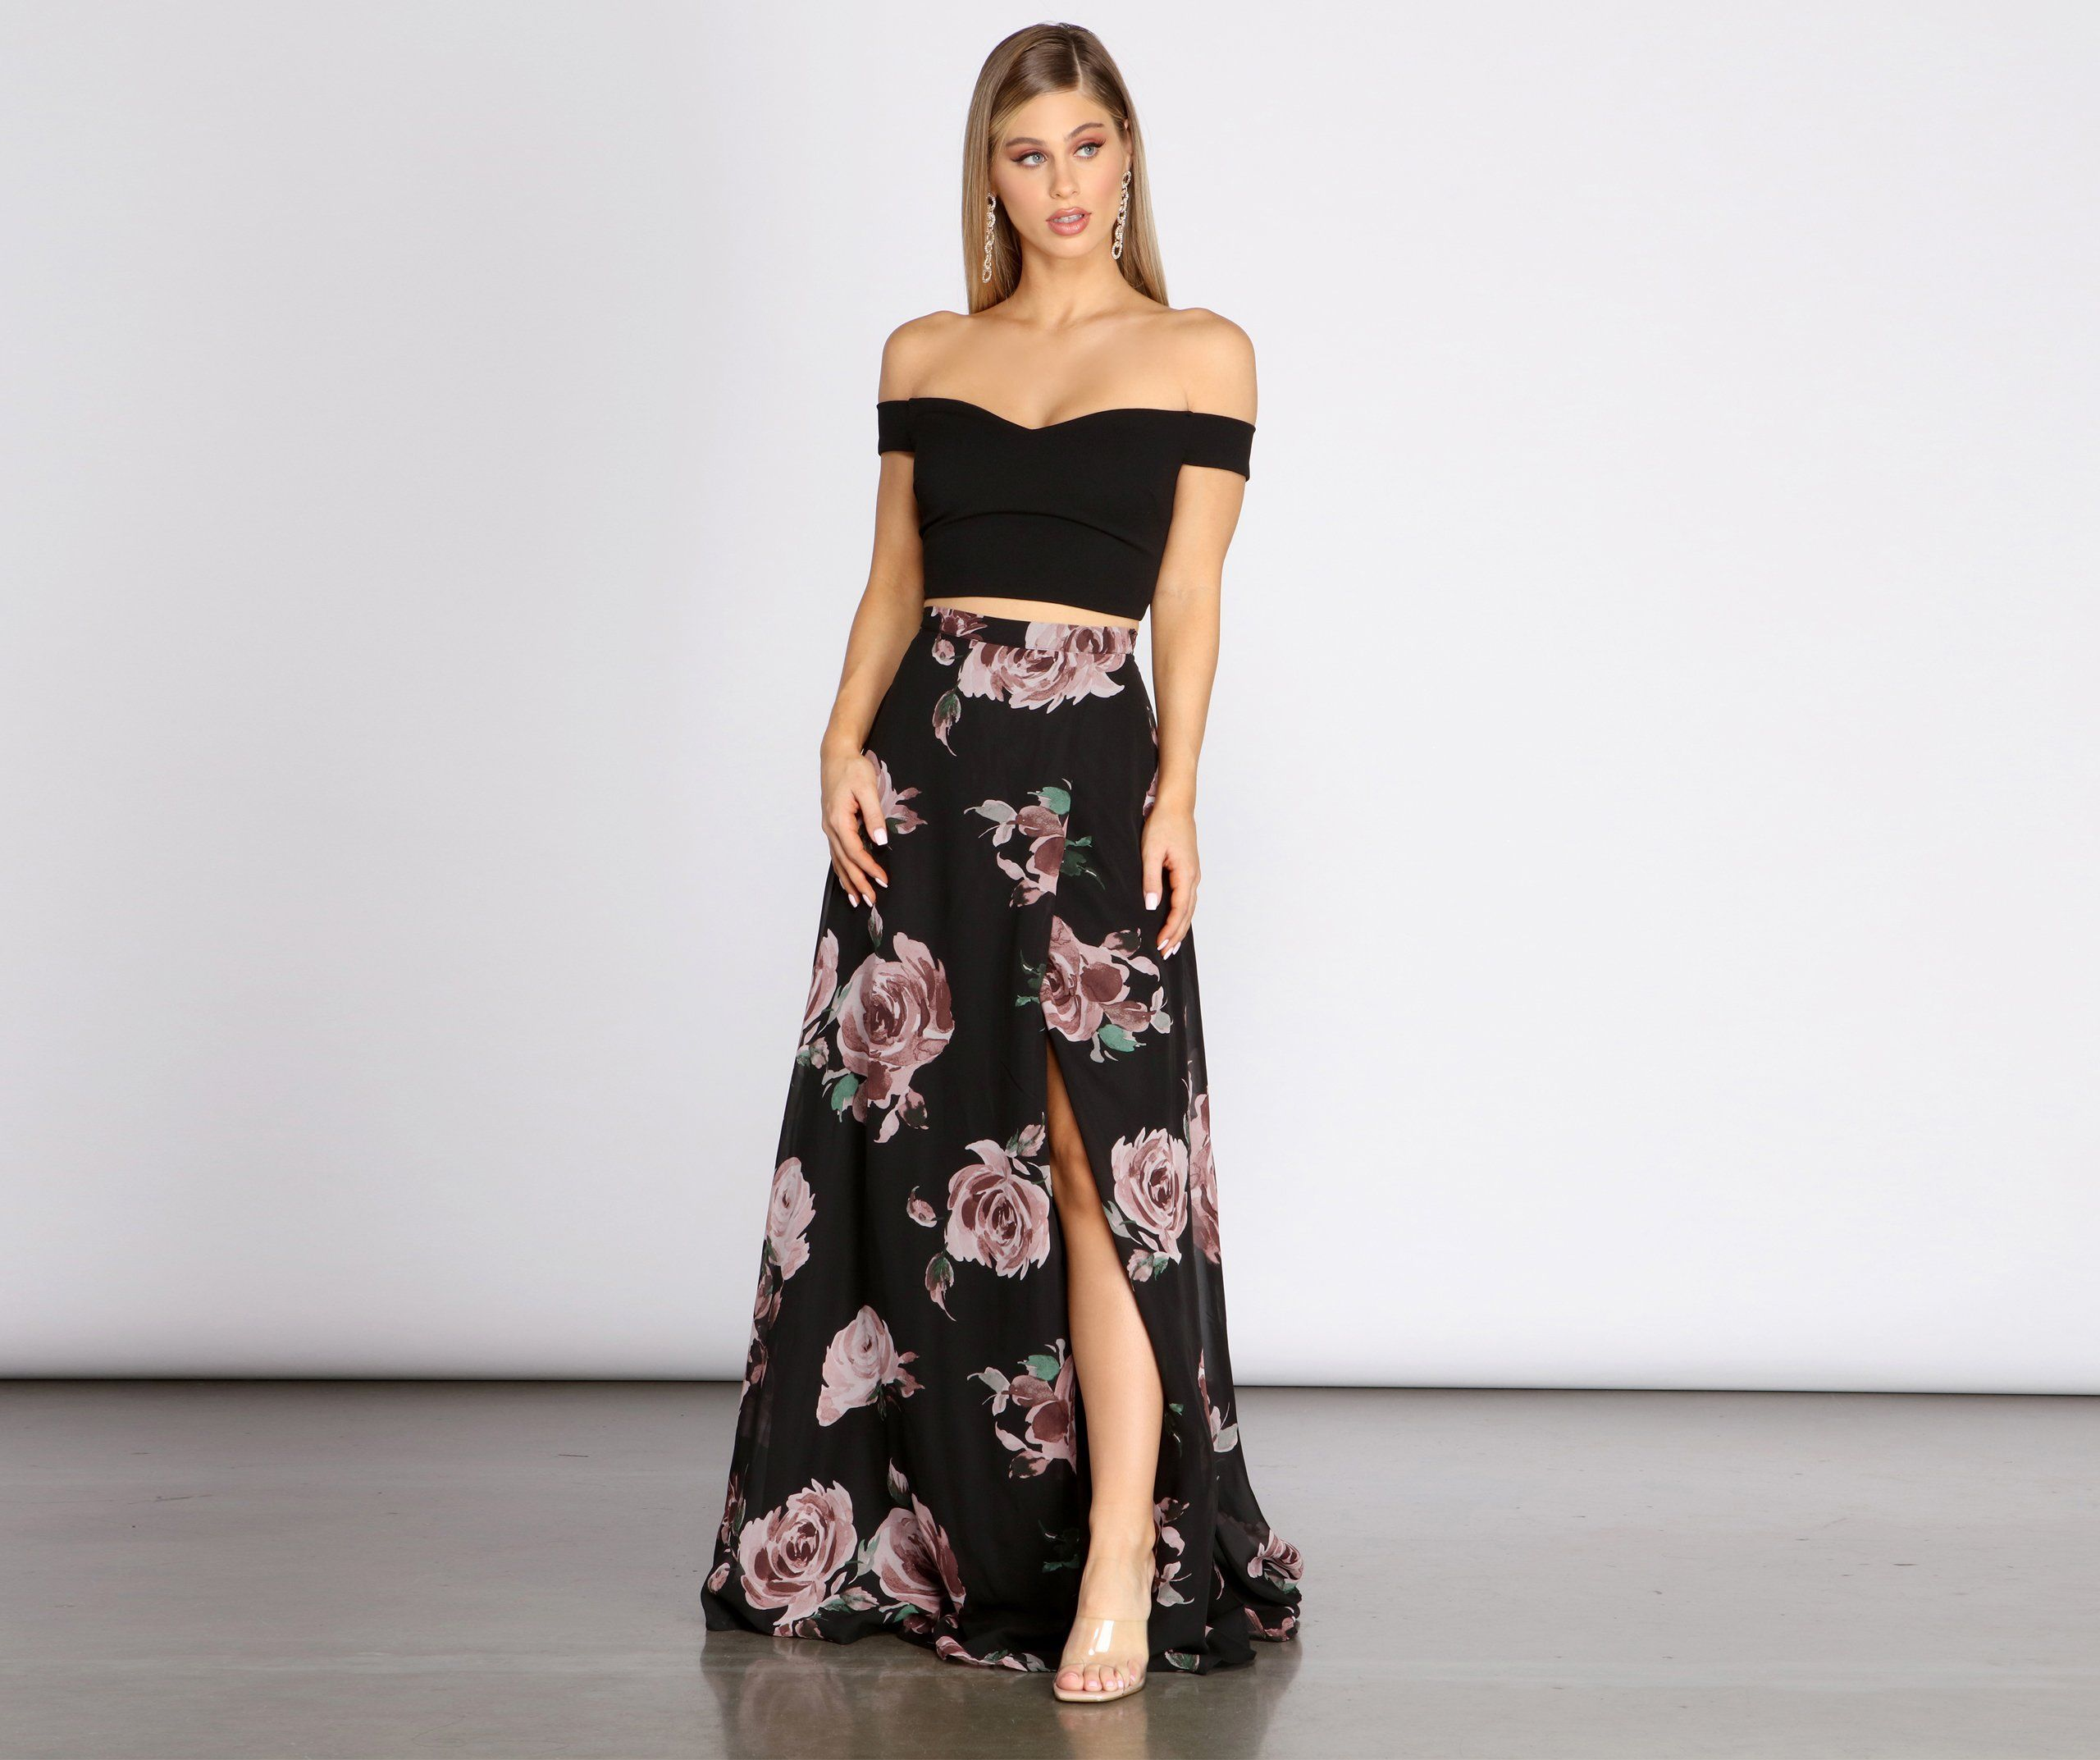 Windsor Flora Floral Two Piece Dress In Black Size Xs Chiffon Source By Windsorstore Floral Dresses Two Piece Dress Two Piece Floral Dress Piece Dress [ 2145 x 2560 Pixel ]